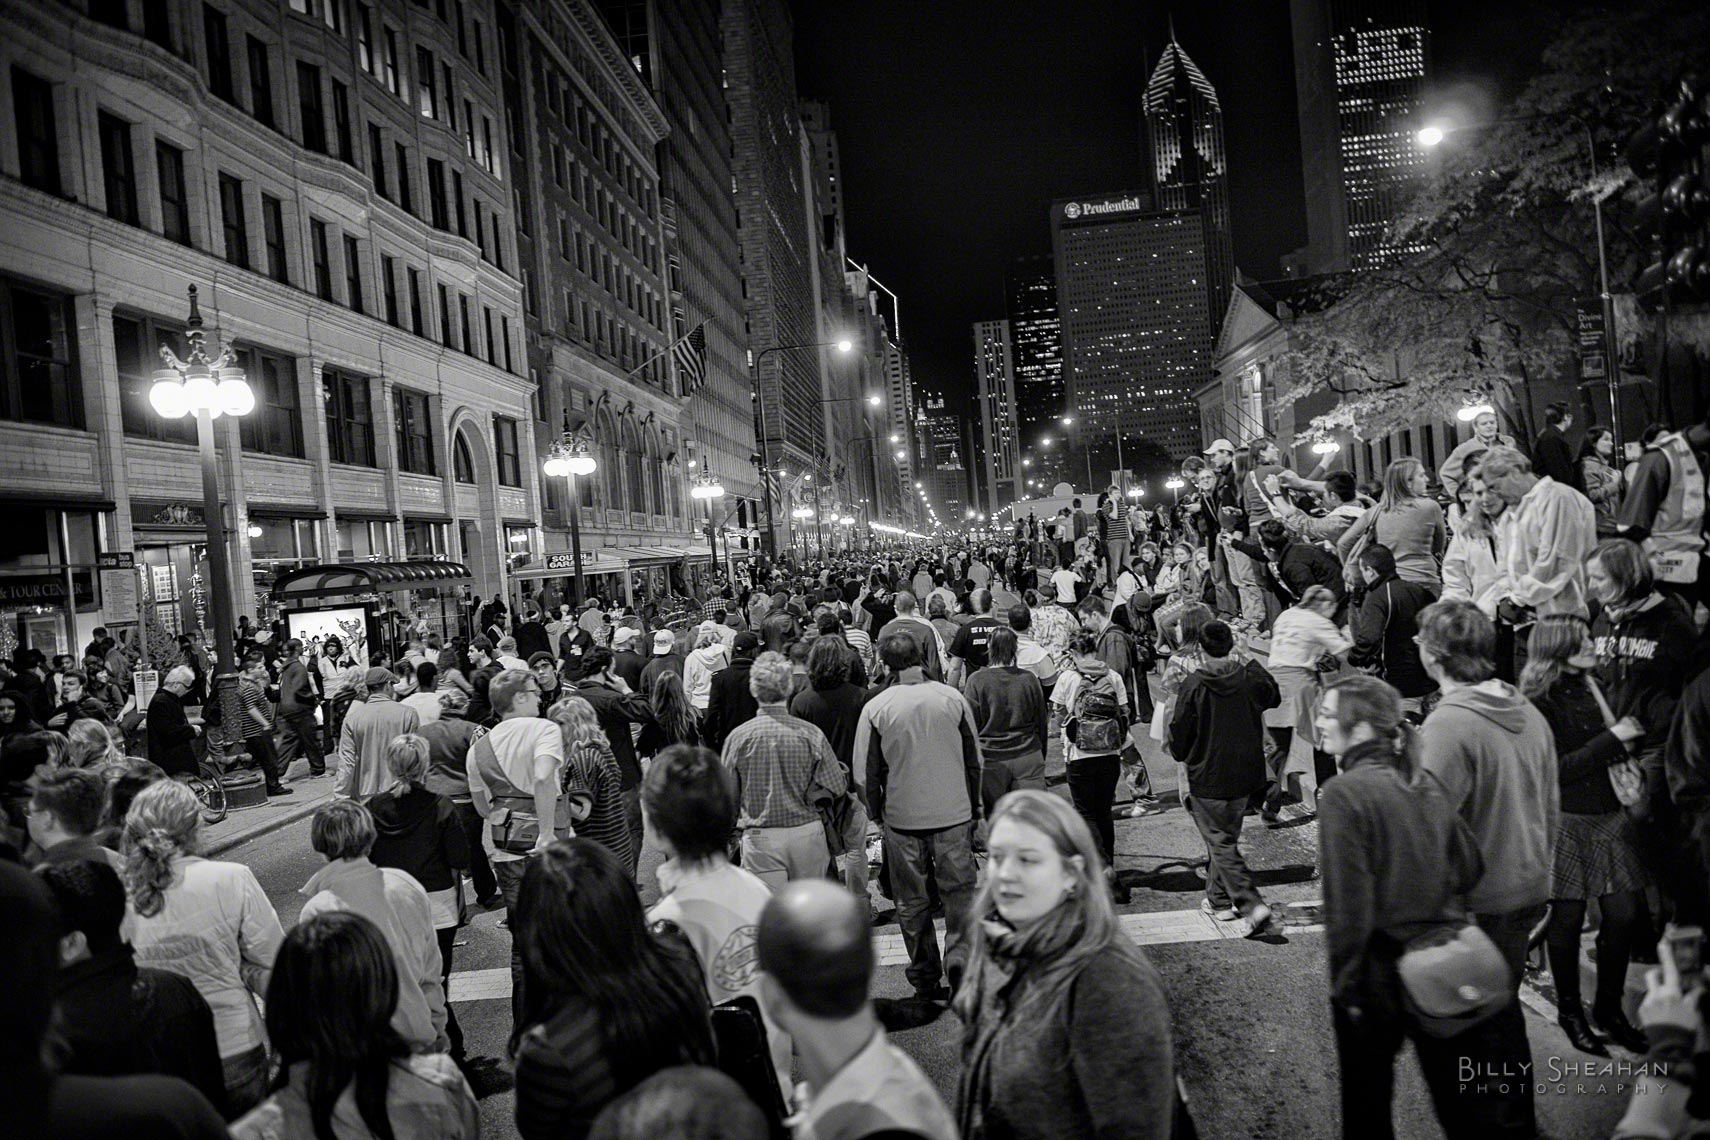 Election_Night_Crowds_Michigan_Ave_BarackObamaGrantPark_04Nov2008_0115_BW_D.jpg